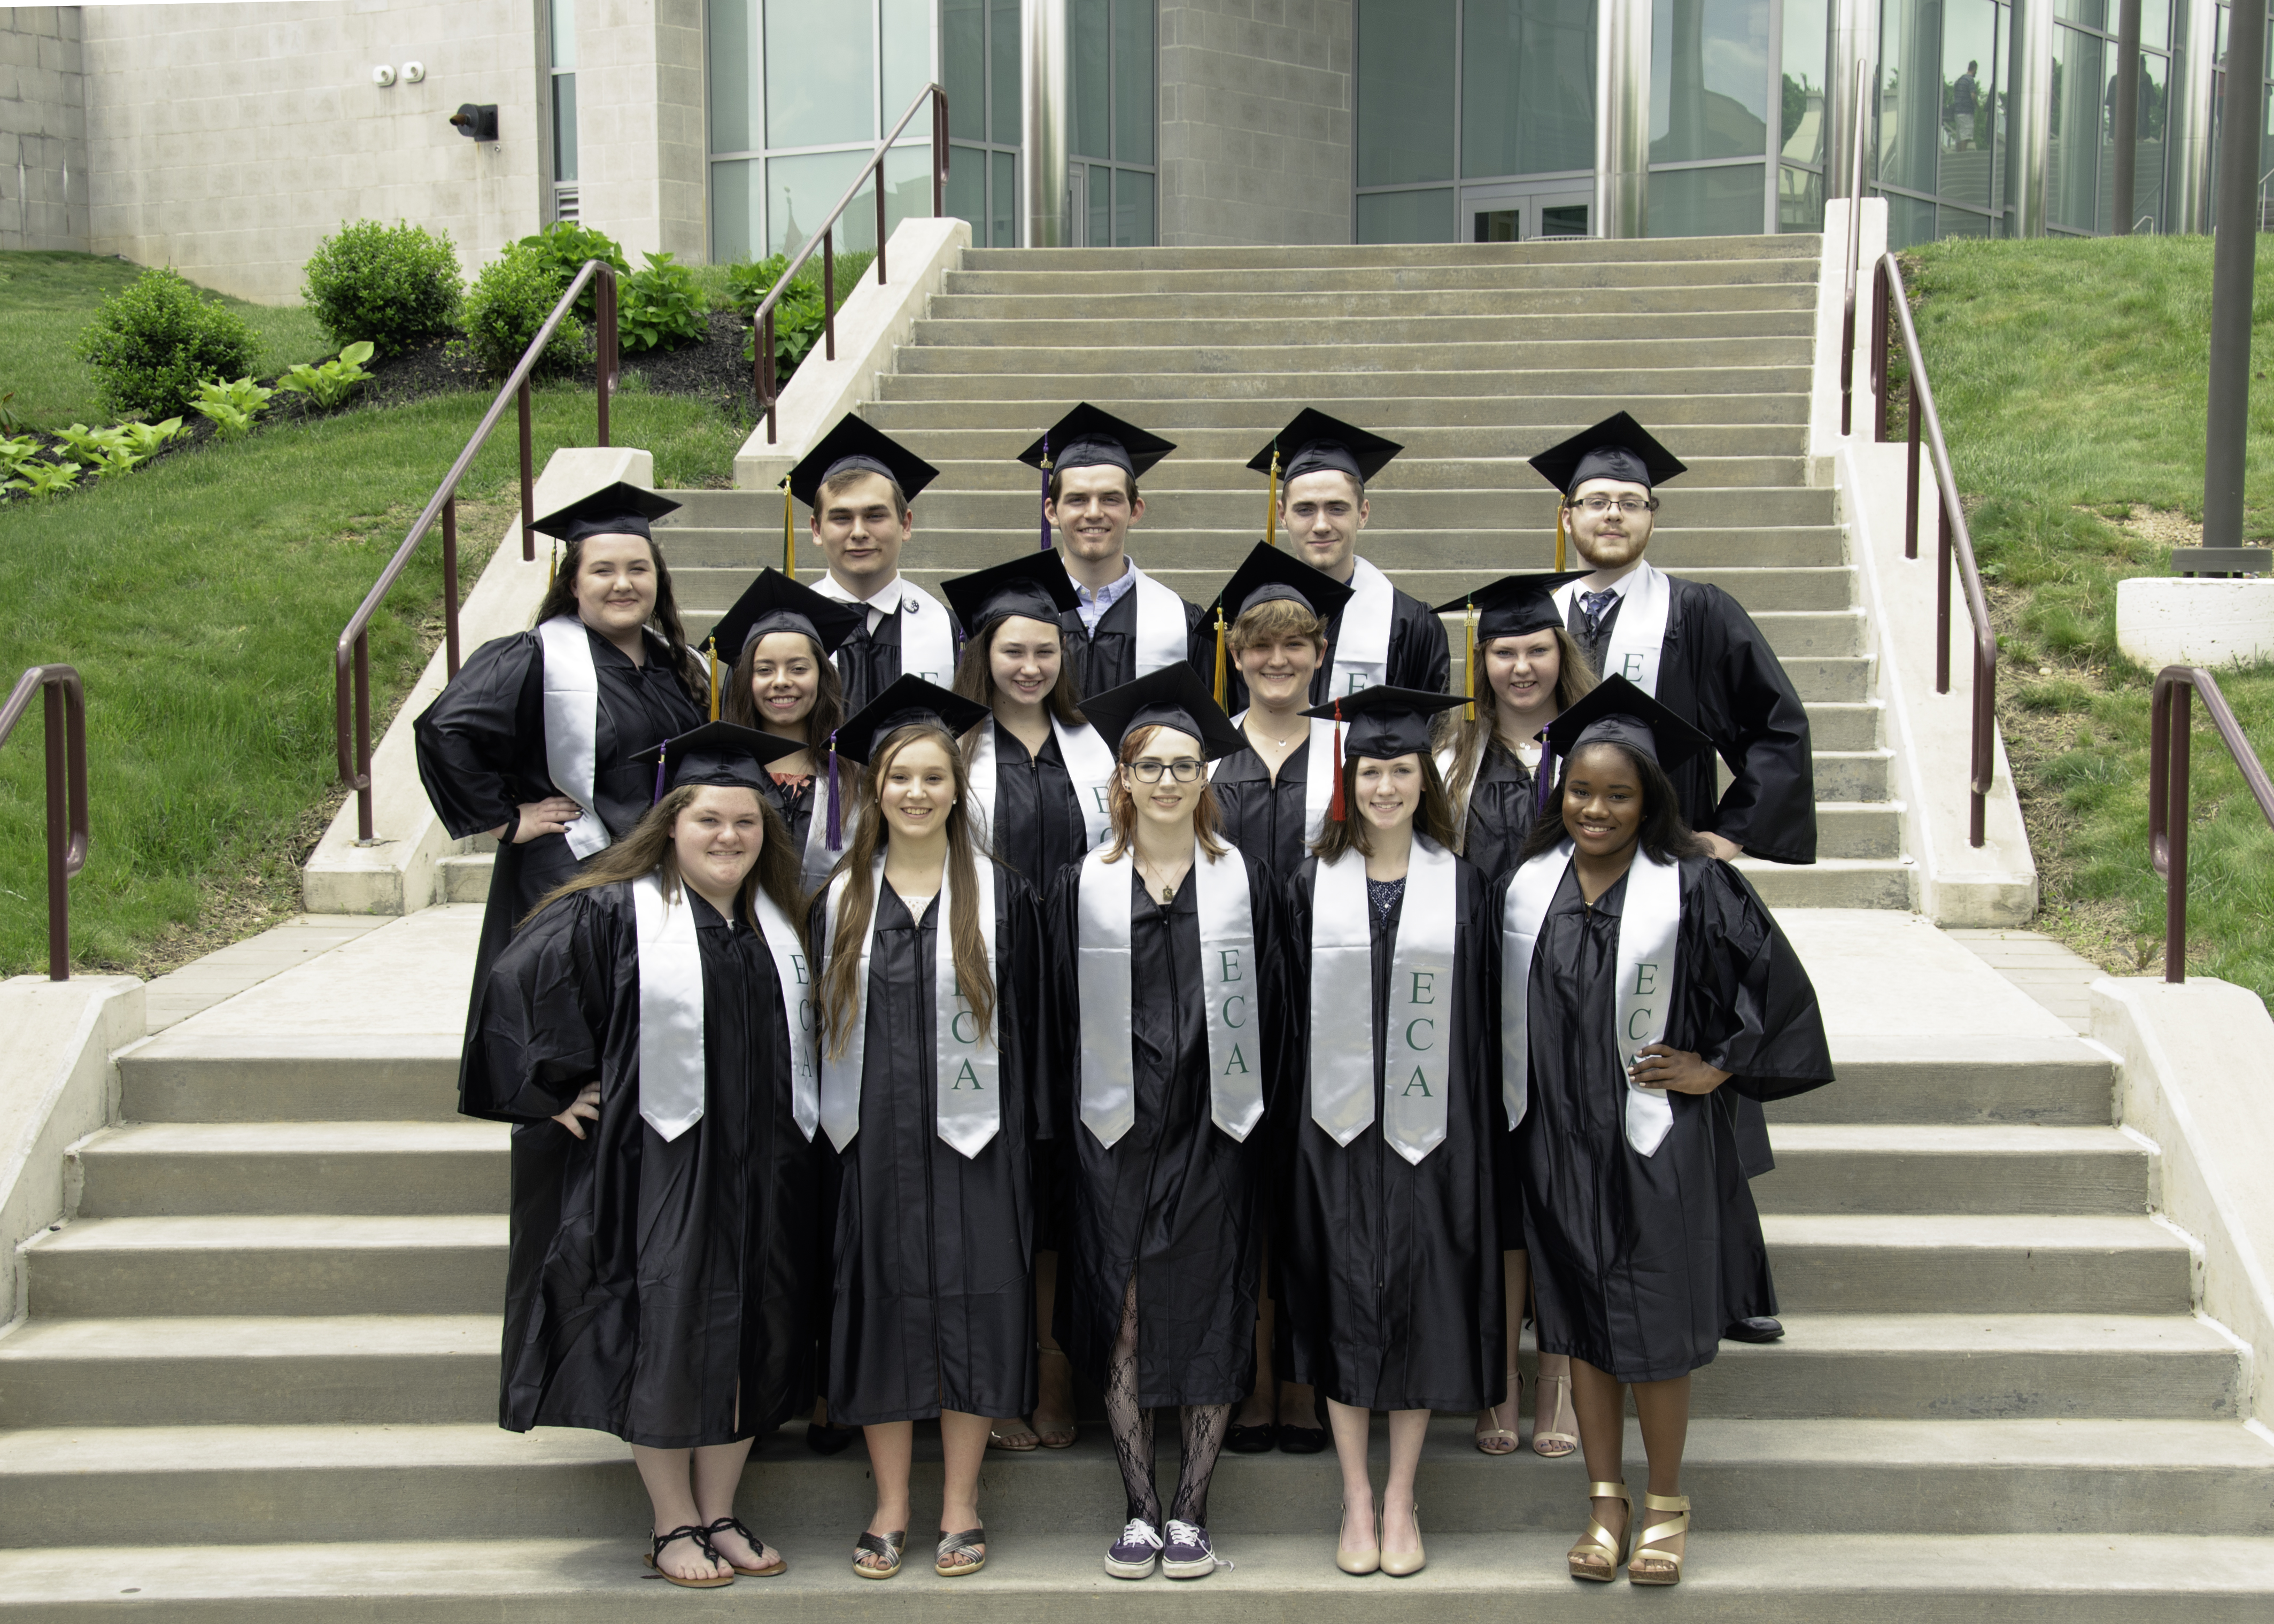 Fifteen Oxford Area High School seniors received associates degrees from Cecil College last week as part of a dual enrollment program that they started four years ago.